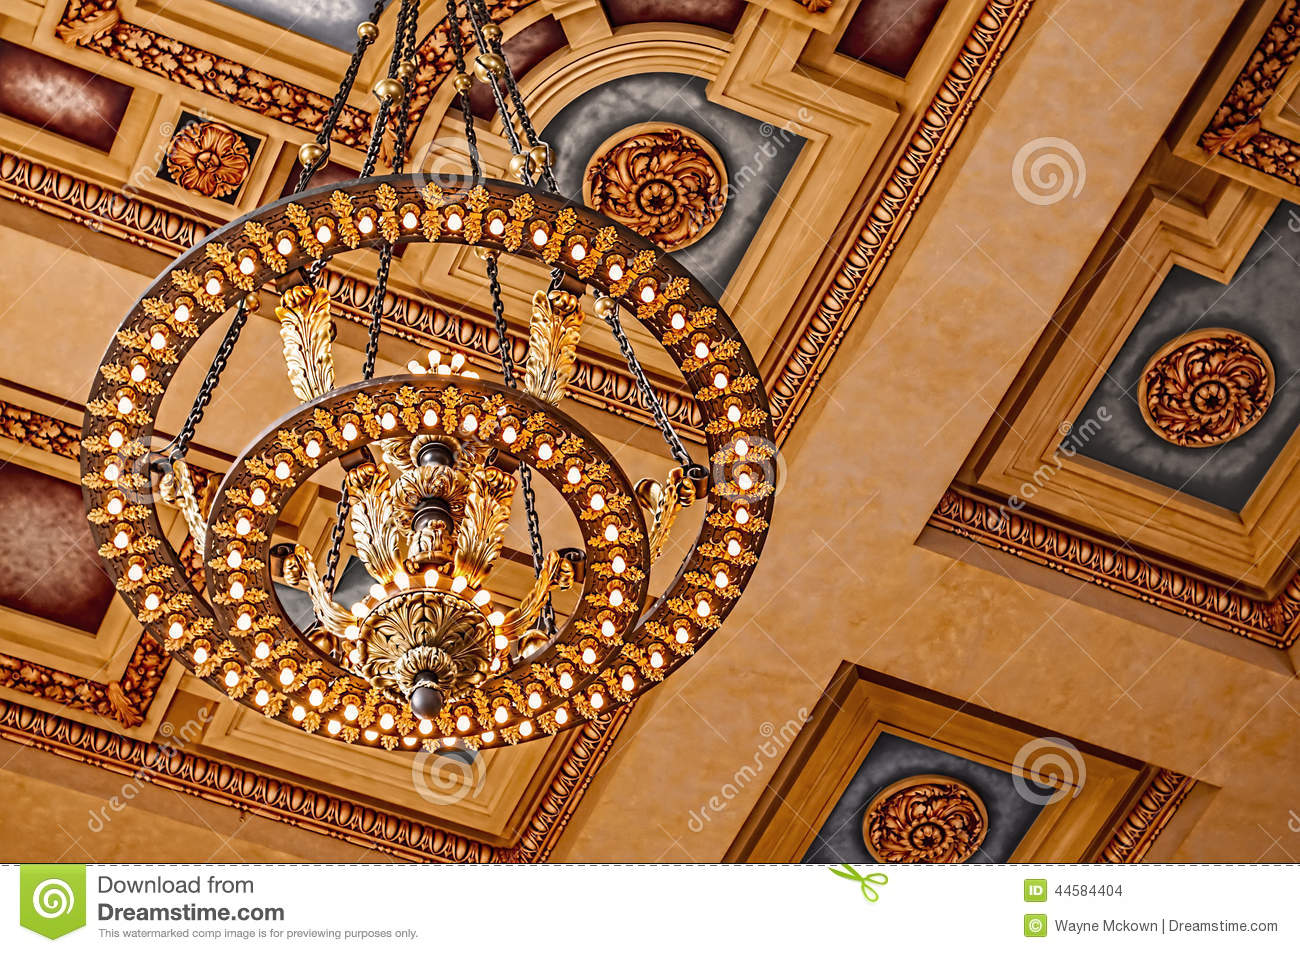 Union Station chandelier and ceiling